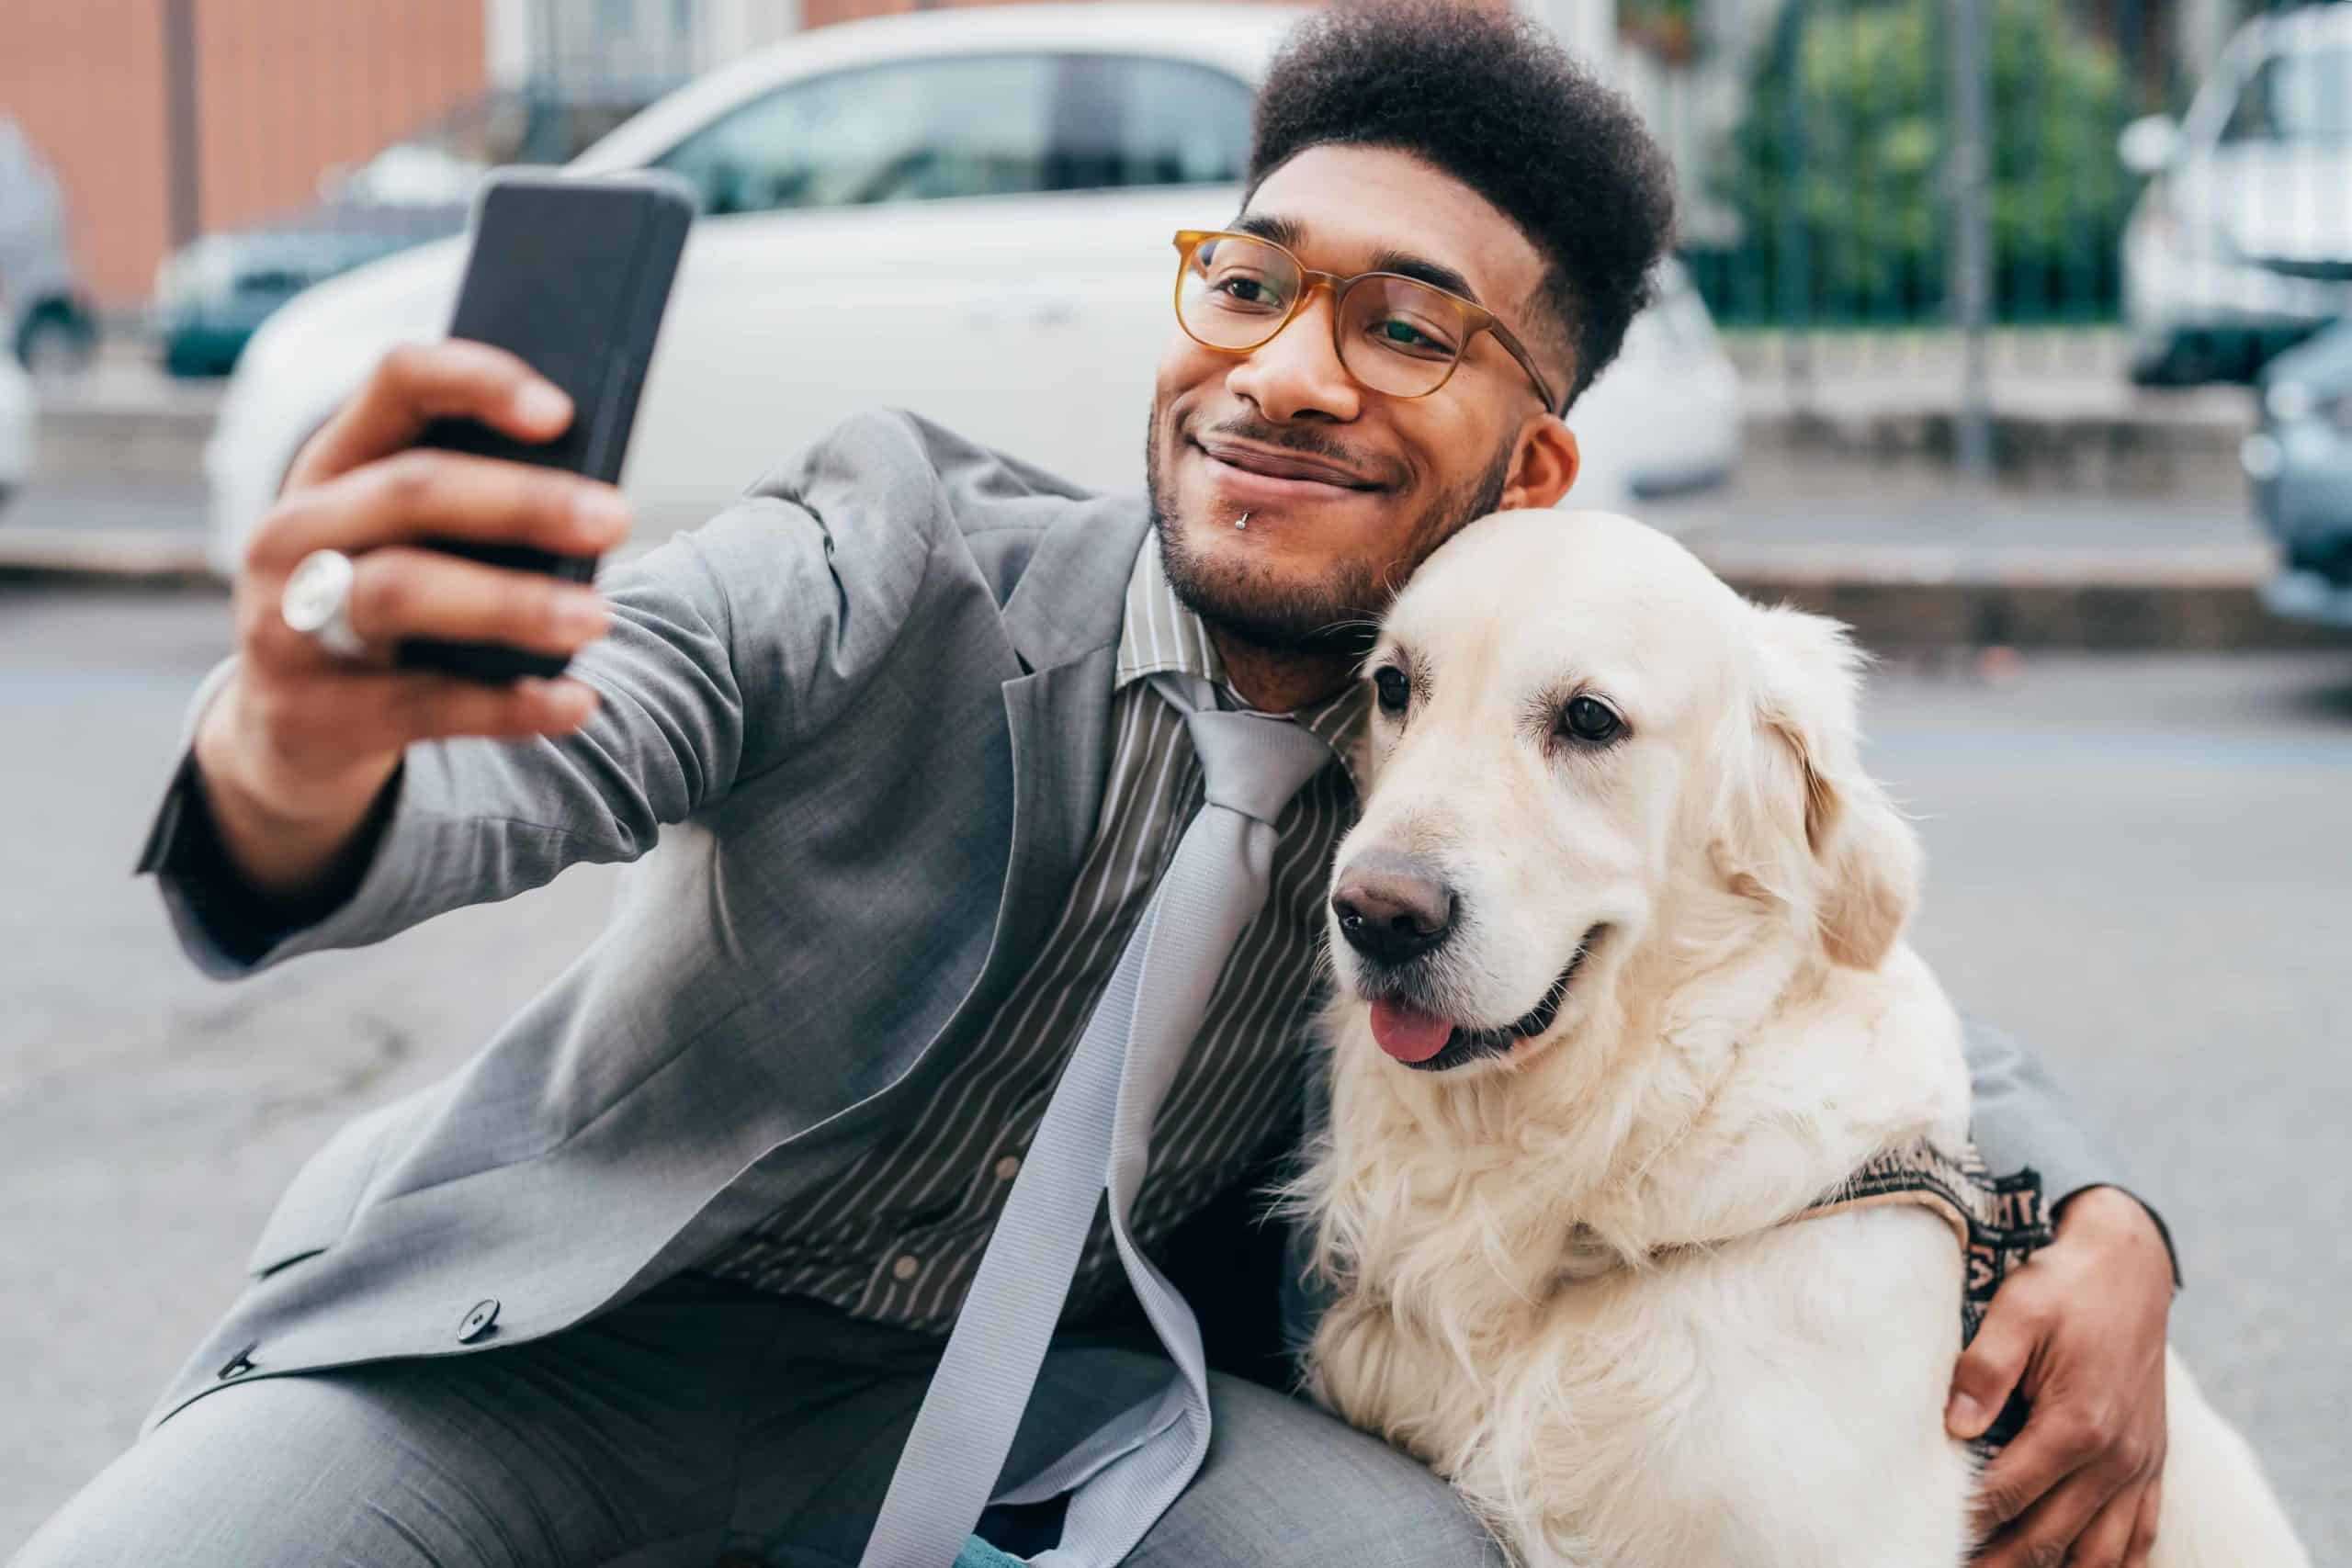 Man poses for selfie with his golden retriever. Adding dog pictures to a dating profile on Bumble provided 22% more matches and 30% more total interactions for women, while men with their dogs received 45% matches and 39% more total interactions.